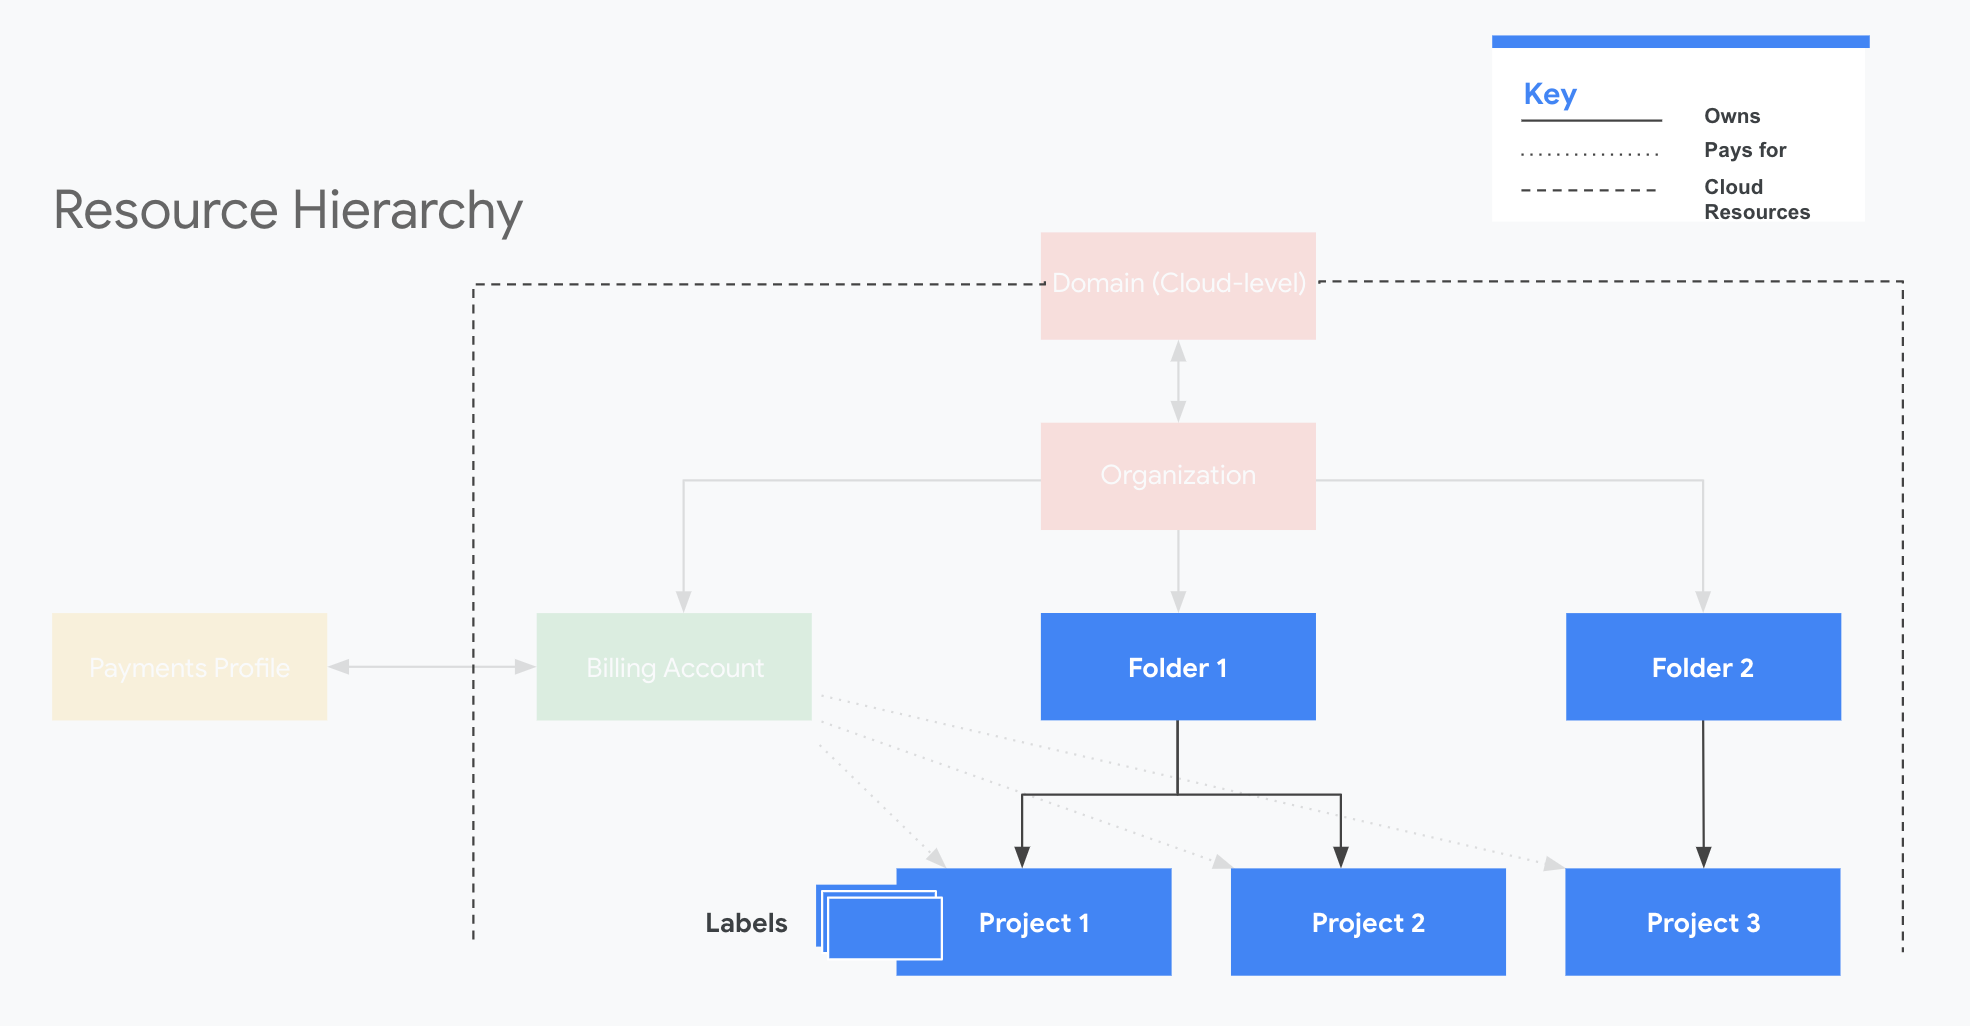 Projects, folders, and labels in the Resource Hierarchy